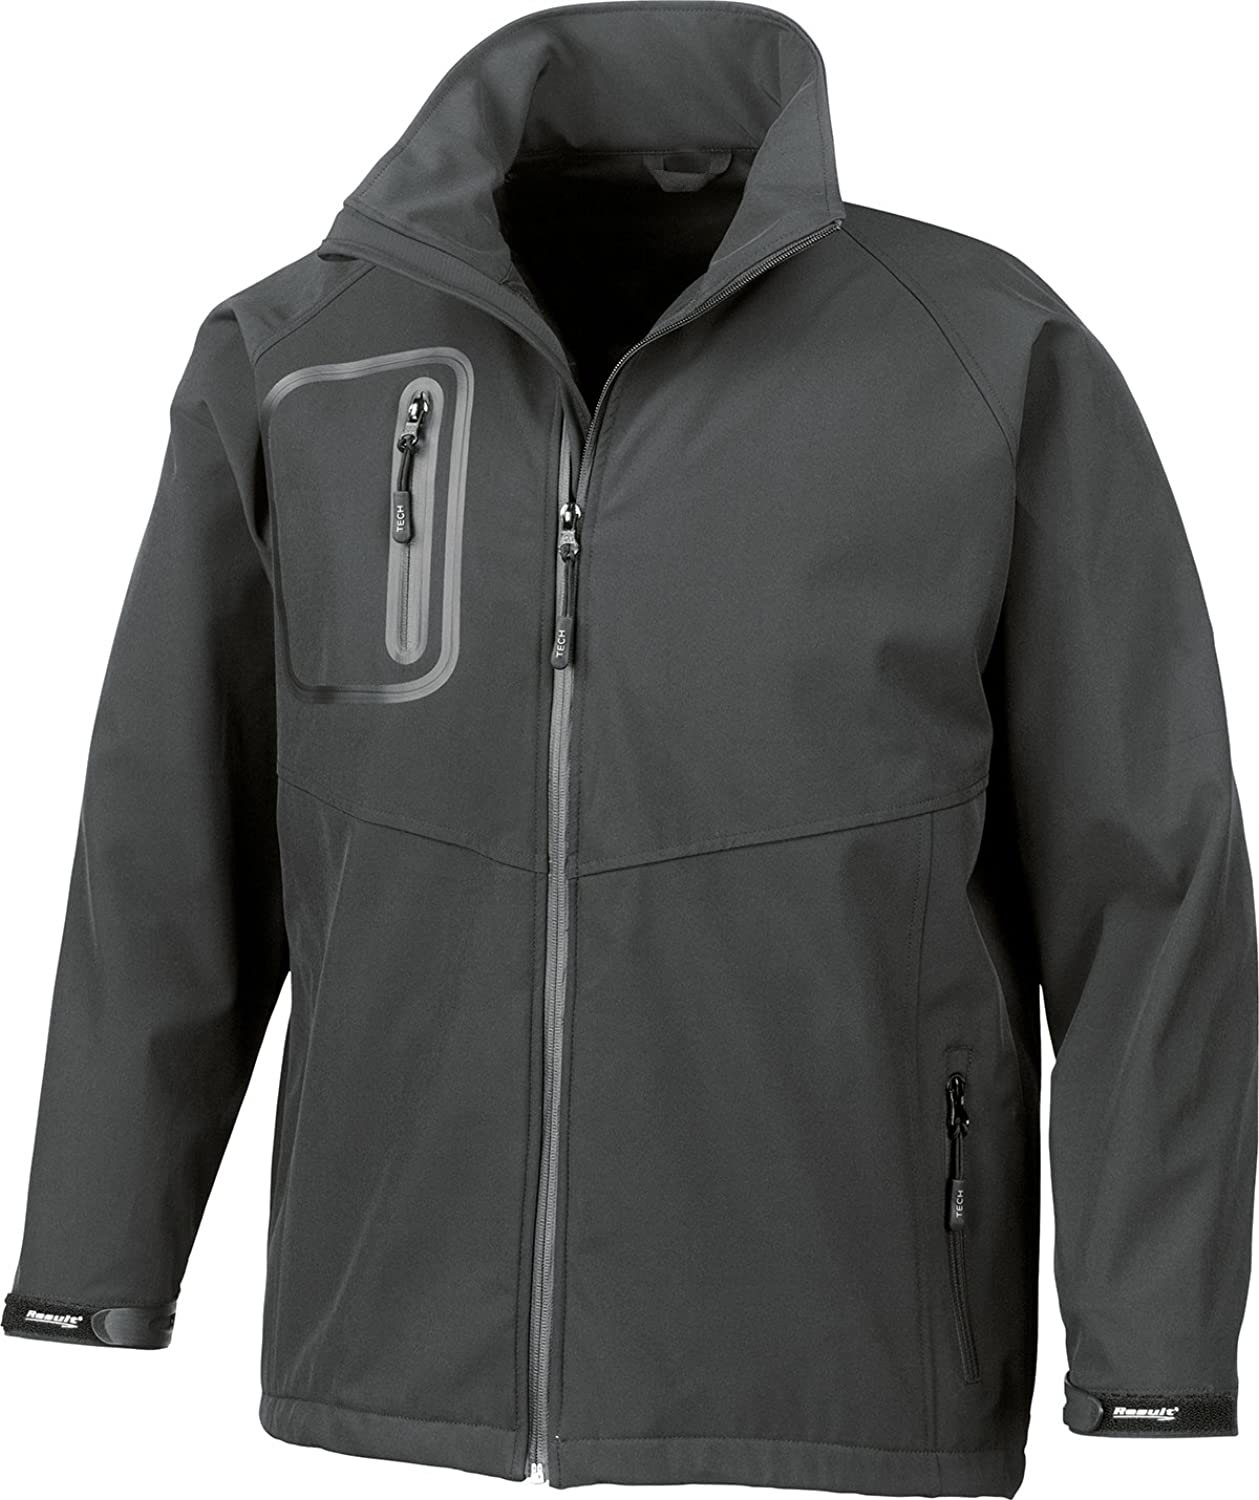 Result Tech Performance Ultra Lite Softshell Top Waterproof Jacket Black XS-2XL